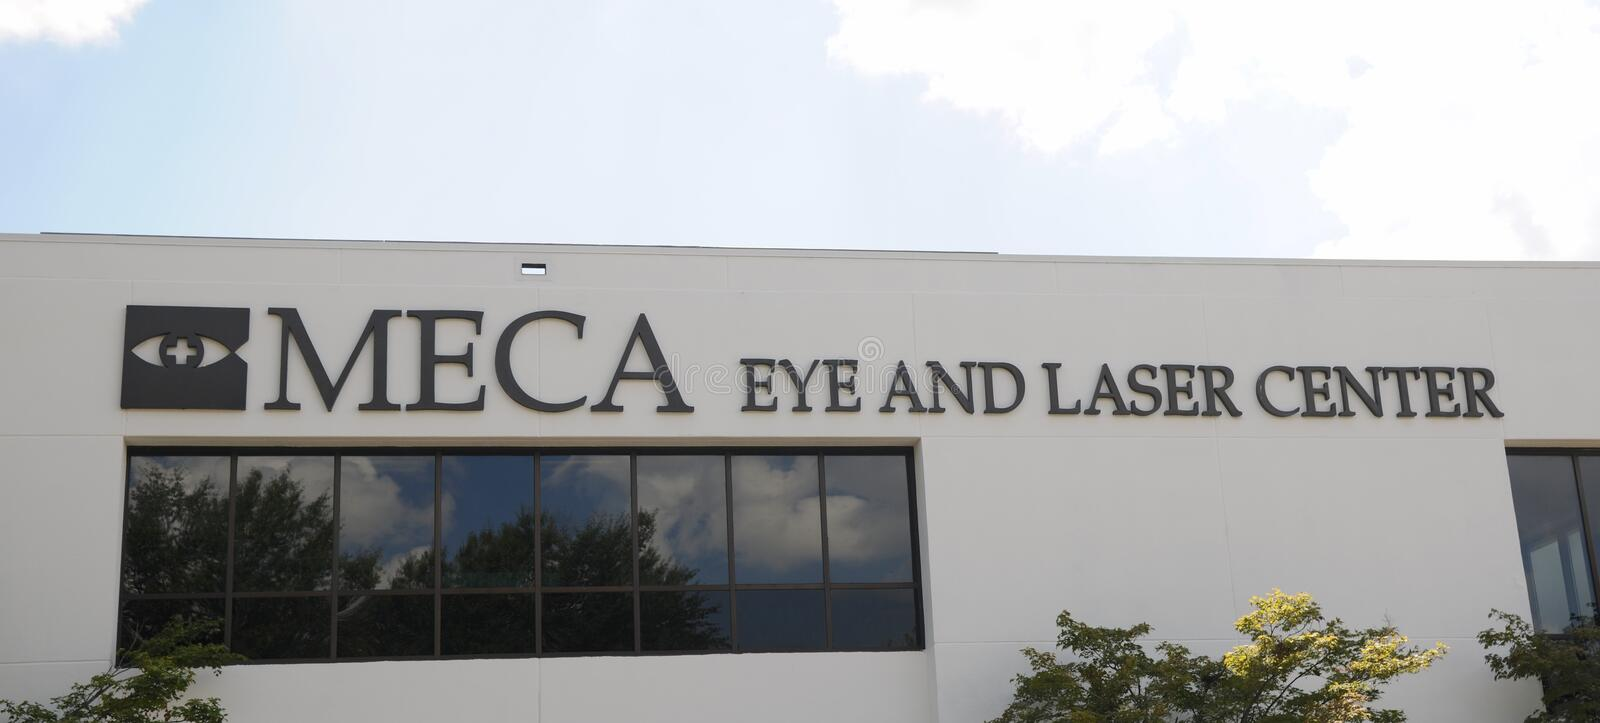 Meca Eye and Laser Center Sign. Meca Eye and Laser Center located in Memphis, TN royalty free stock image